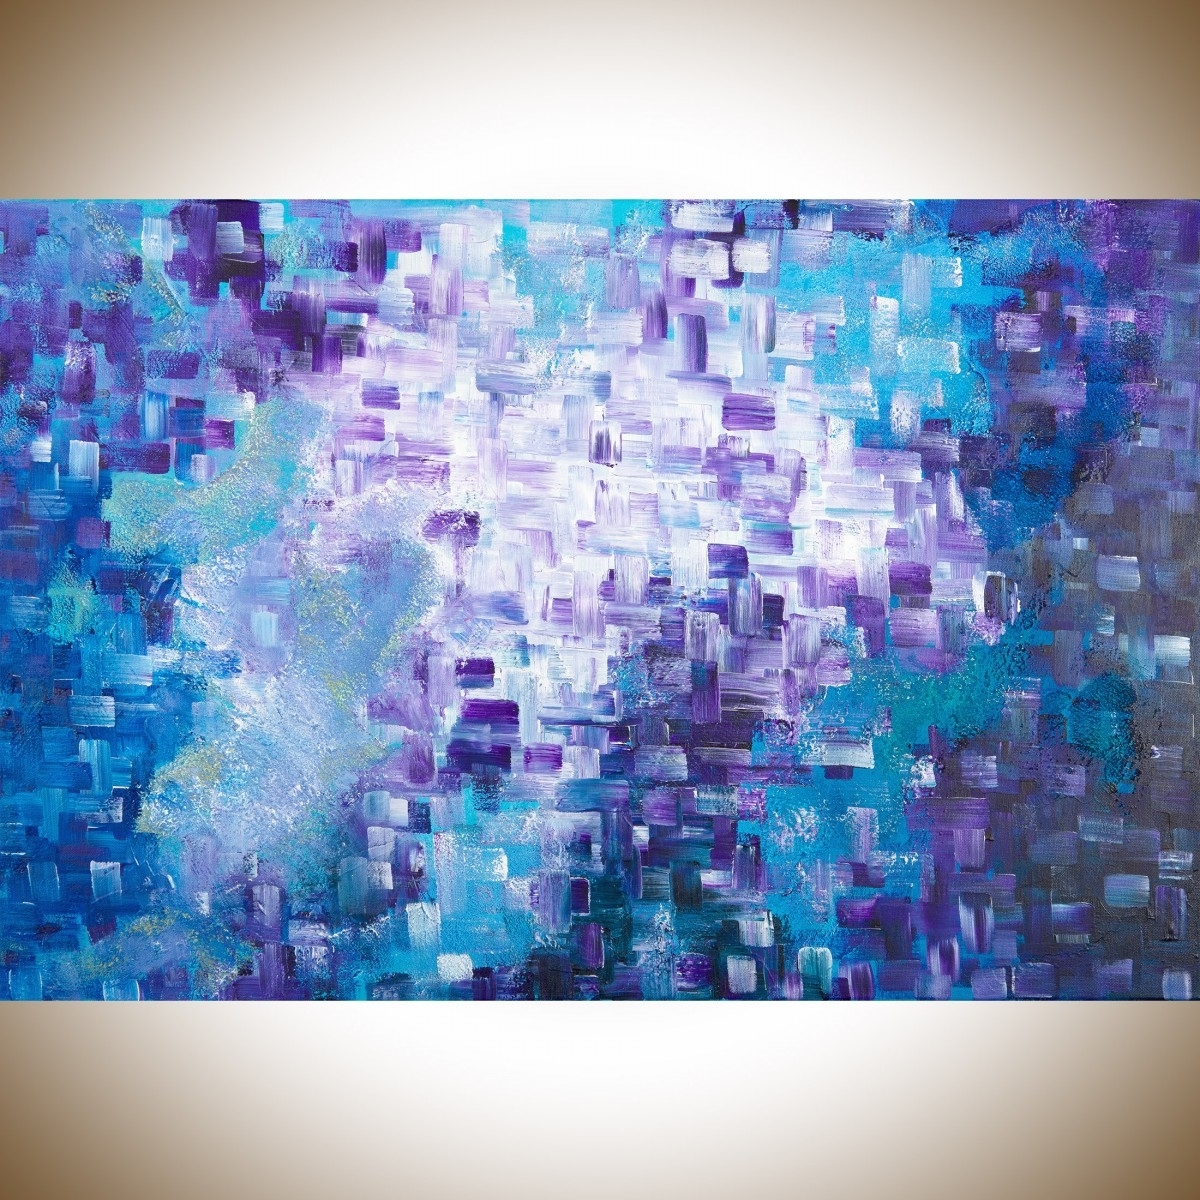 """Dissolvingqiqigallery 36""""x24"""" Stretched Canvas Original Large Inside Trendy Purple Wall Art Canvas (View 15 of 15)"""